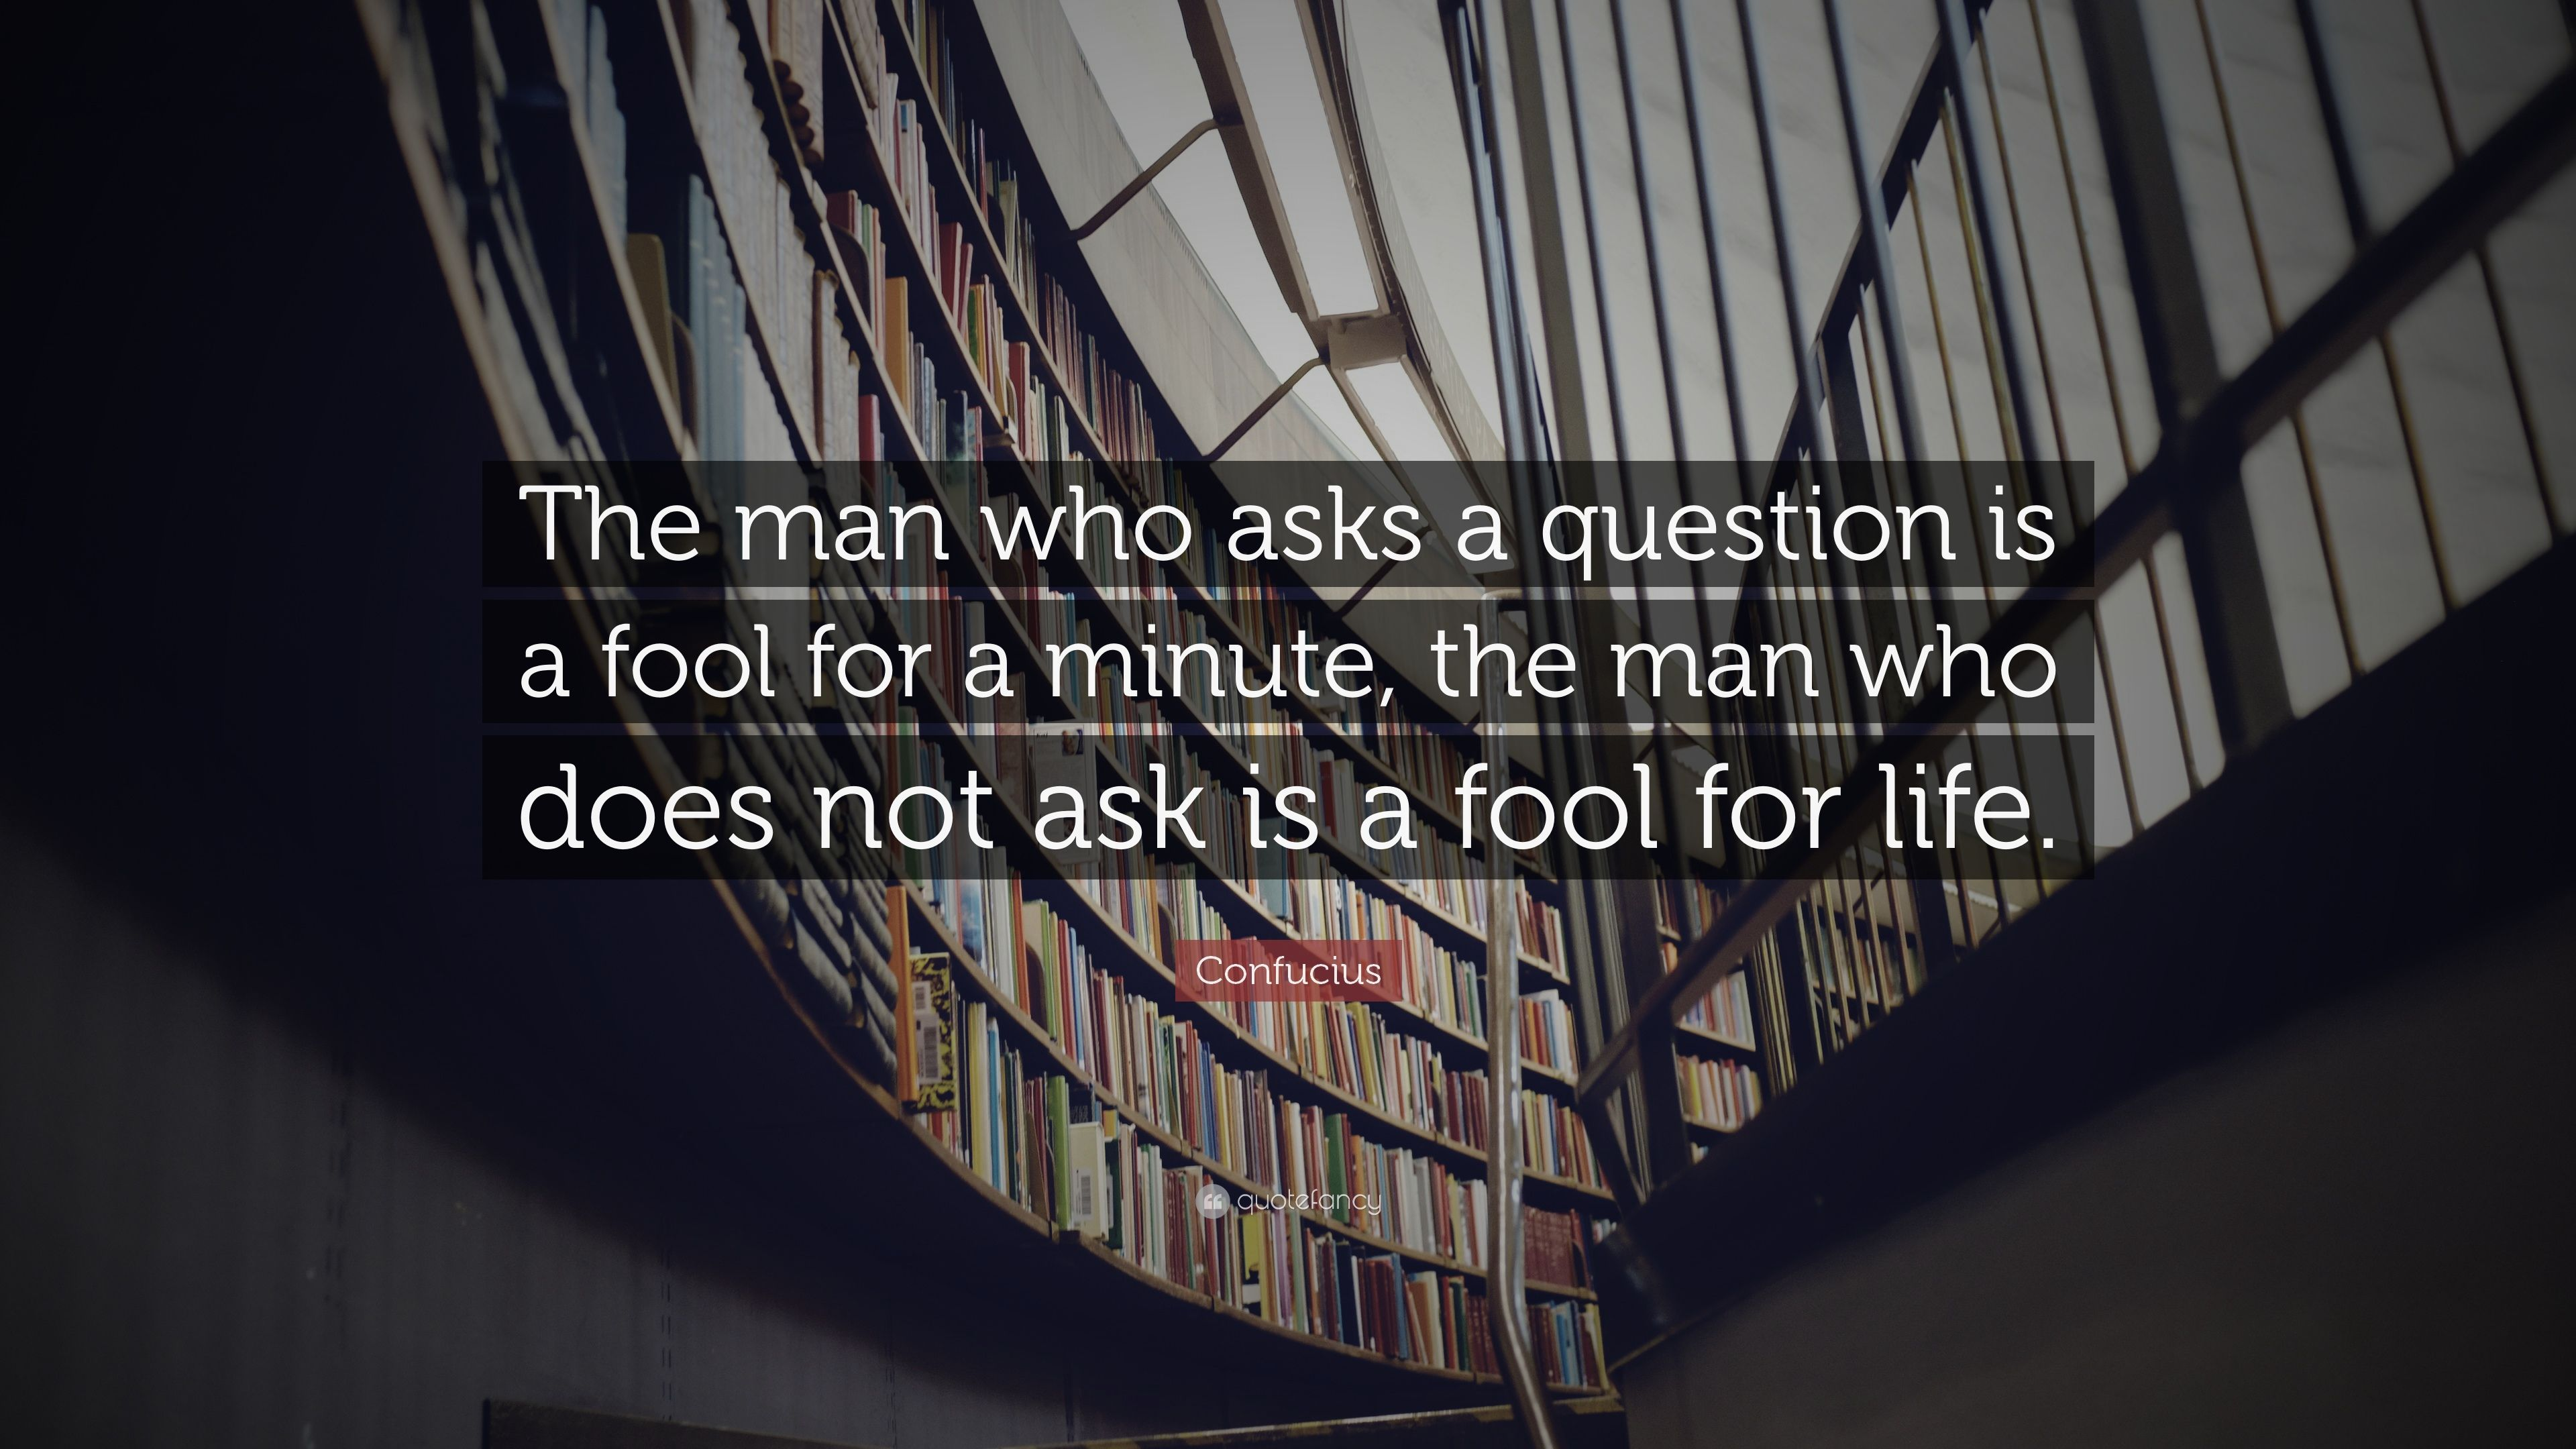 57135-Confucius-Quote-The-man-who-asks-a-question-is-a-fool-for-a-minute.jpg (3840×2160)